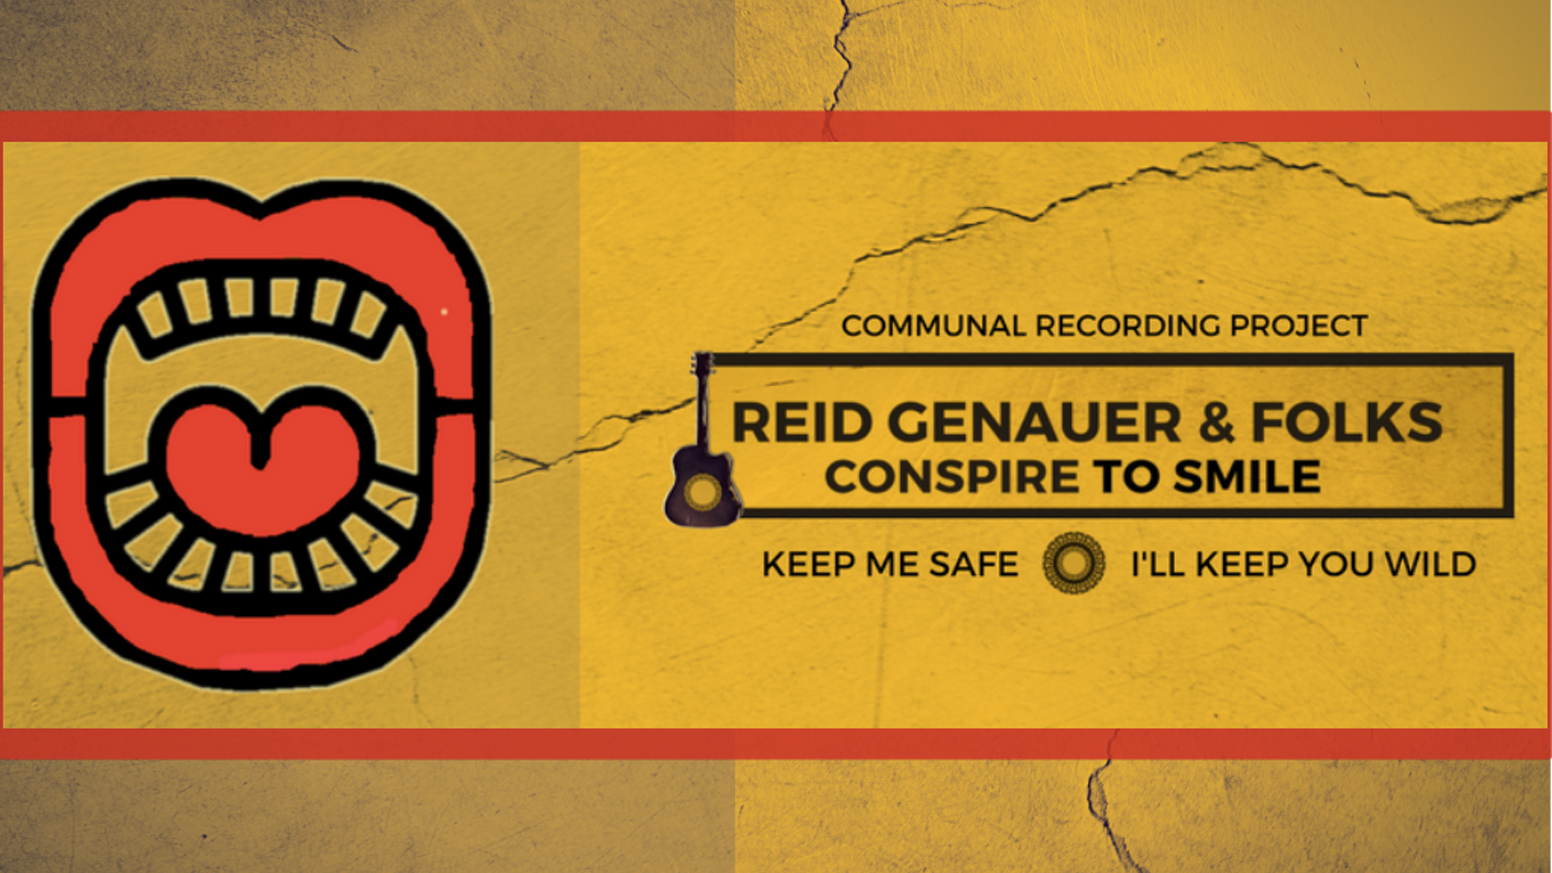 REID GENAUER & FOLKS | CONSPIRE TO SMILE